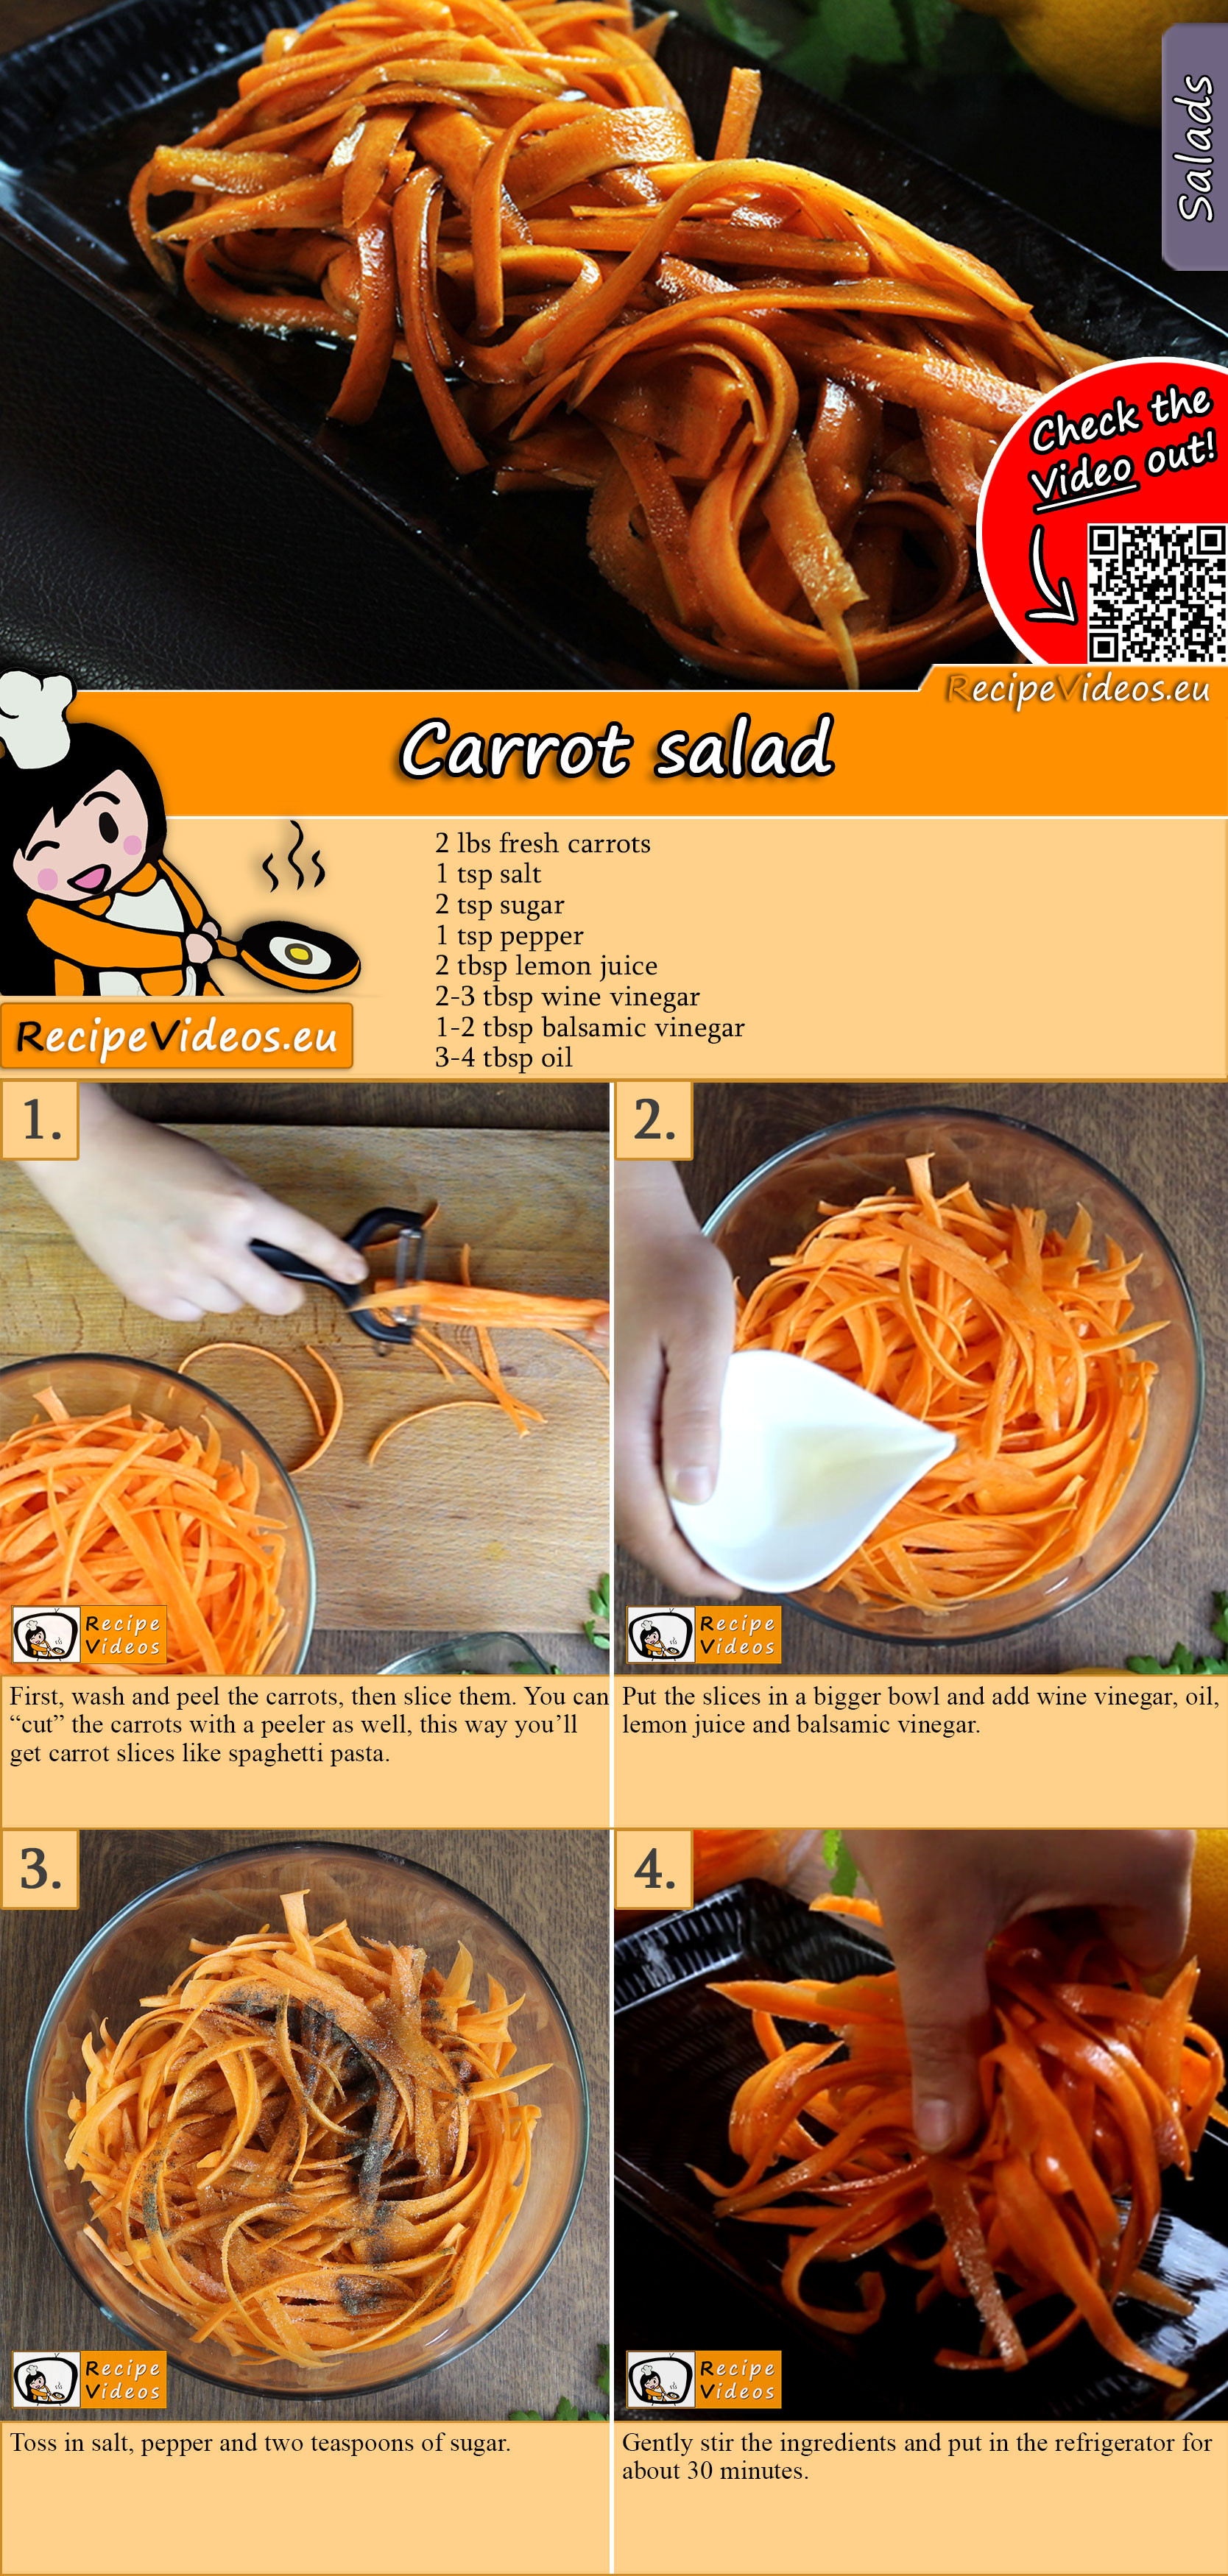 Carrot salad recipe with video